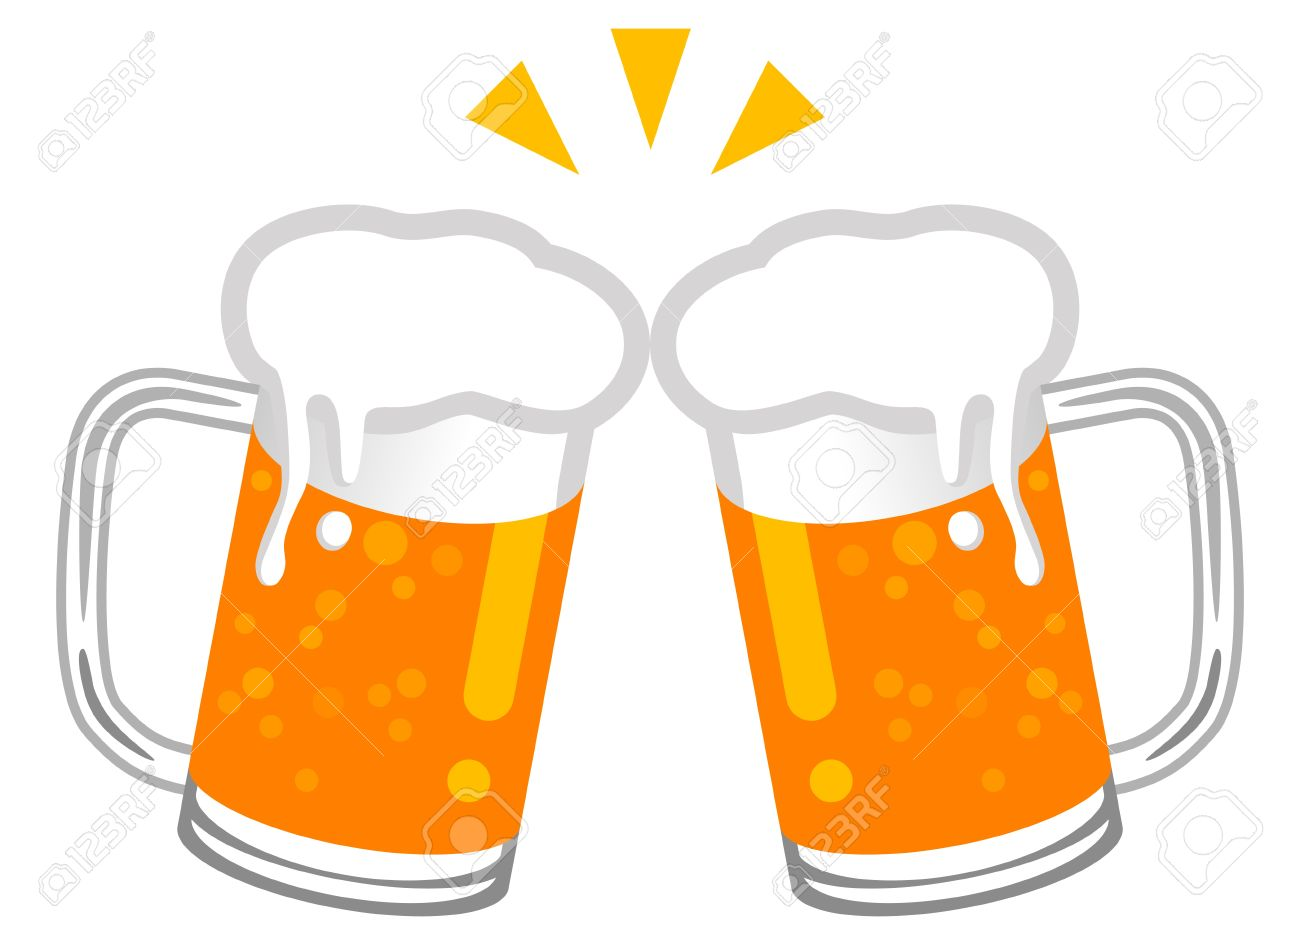 Drink clipart free beer Clipart 1300x945 clipart clipart collection